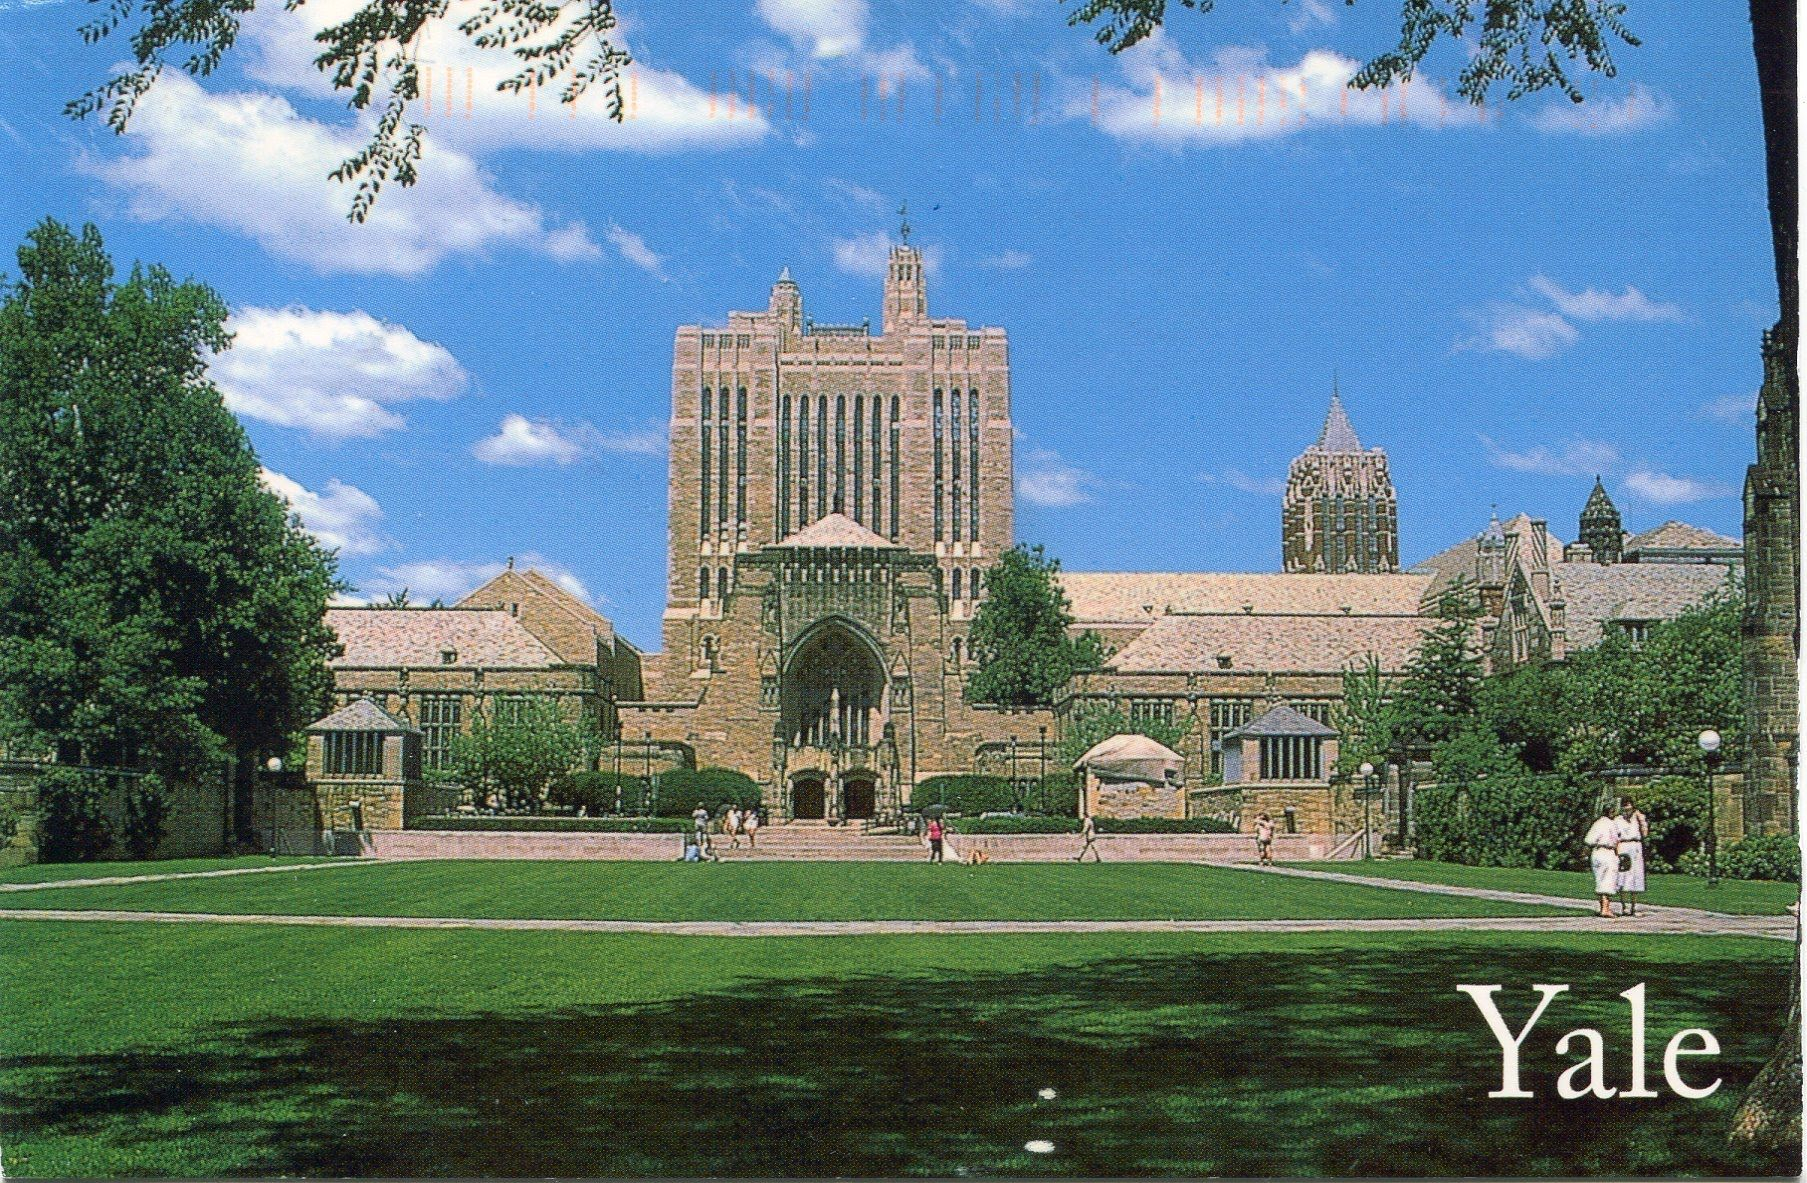 Yale University New Haven, Ct 6520, #collegesinusa In University Of New Haven Ct Calender